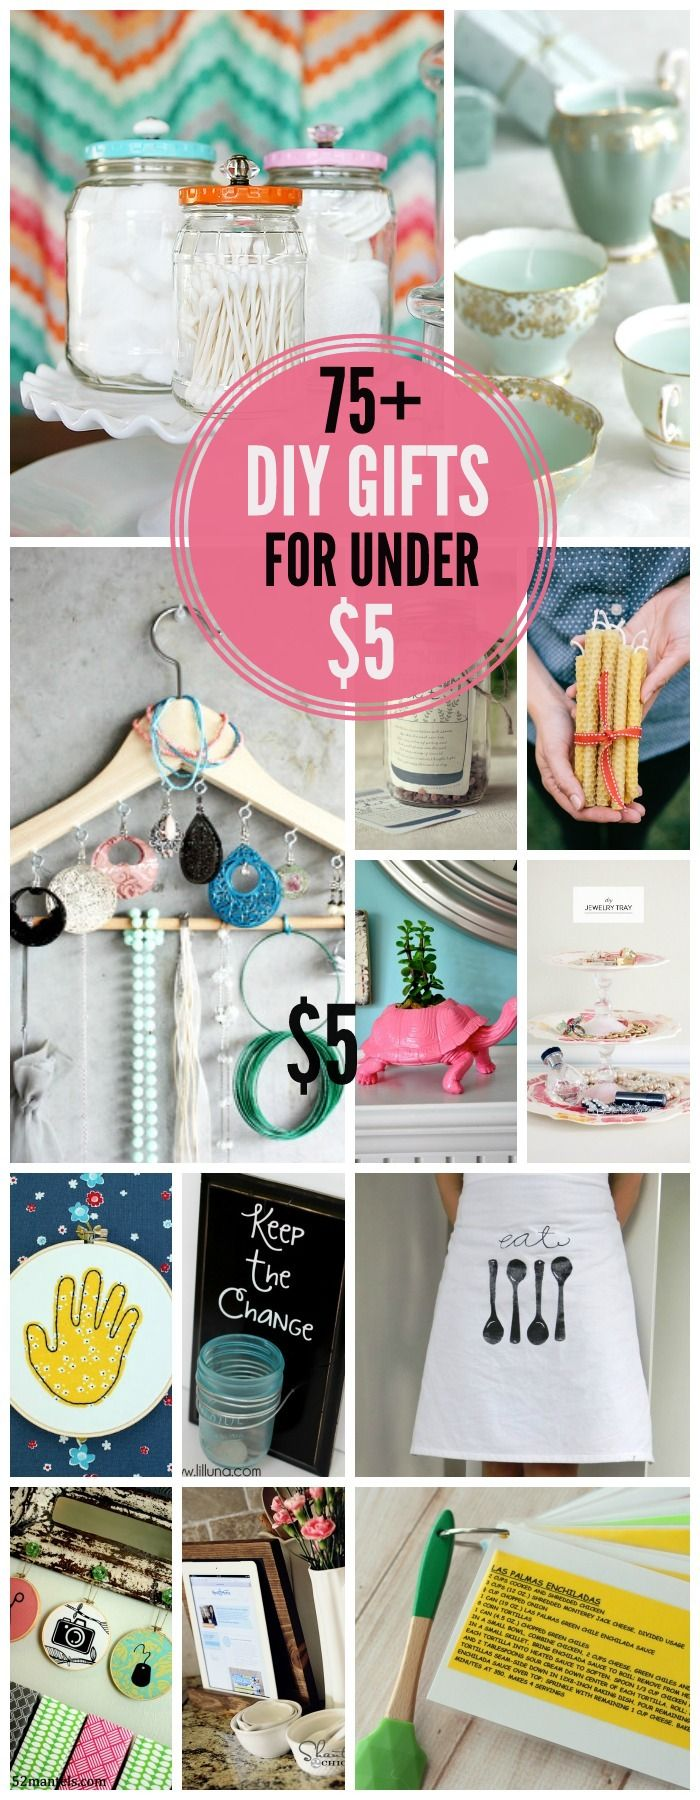 75+ Handmade Gifts ~~ for under $5! So many great gift ideas in one place!